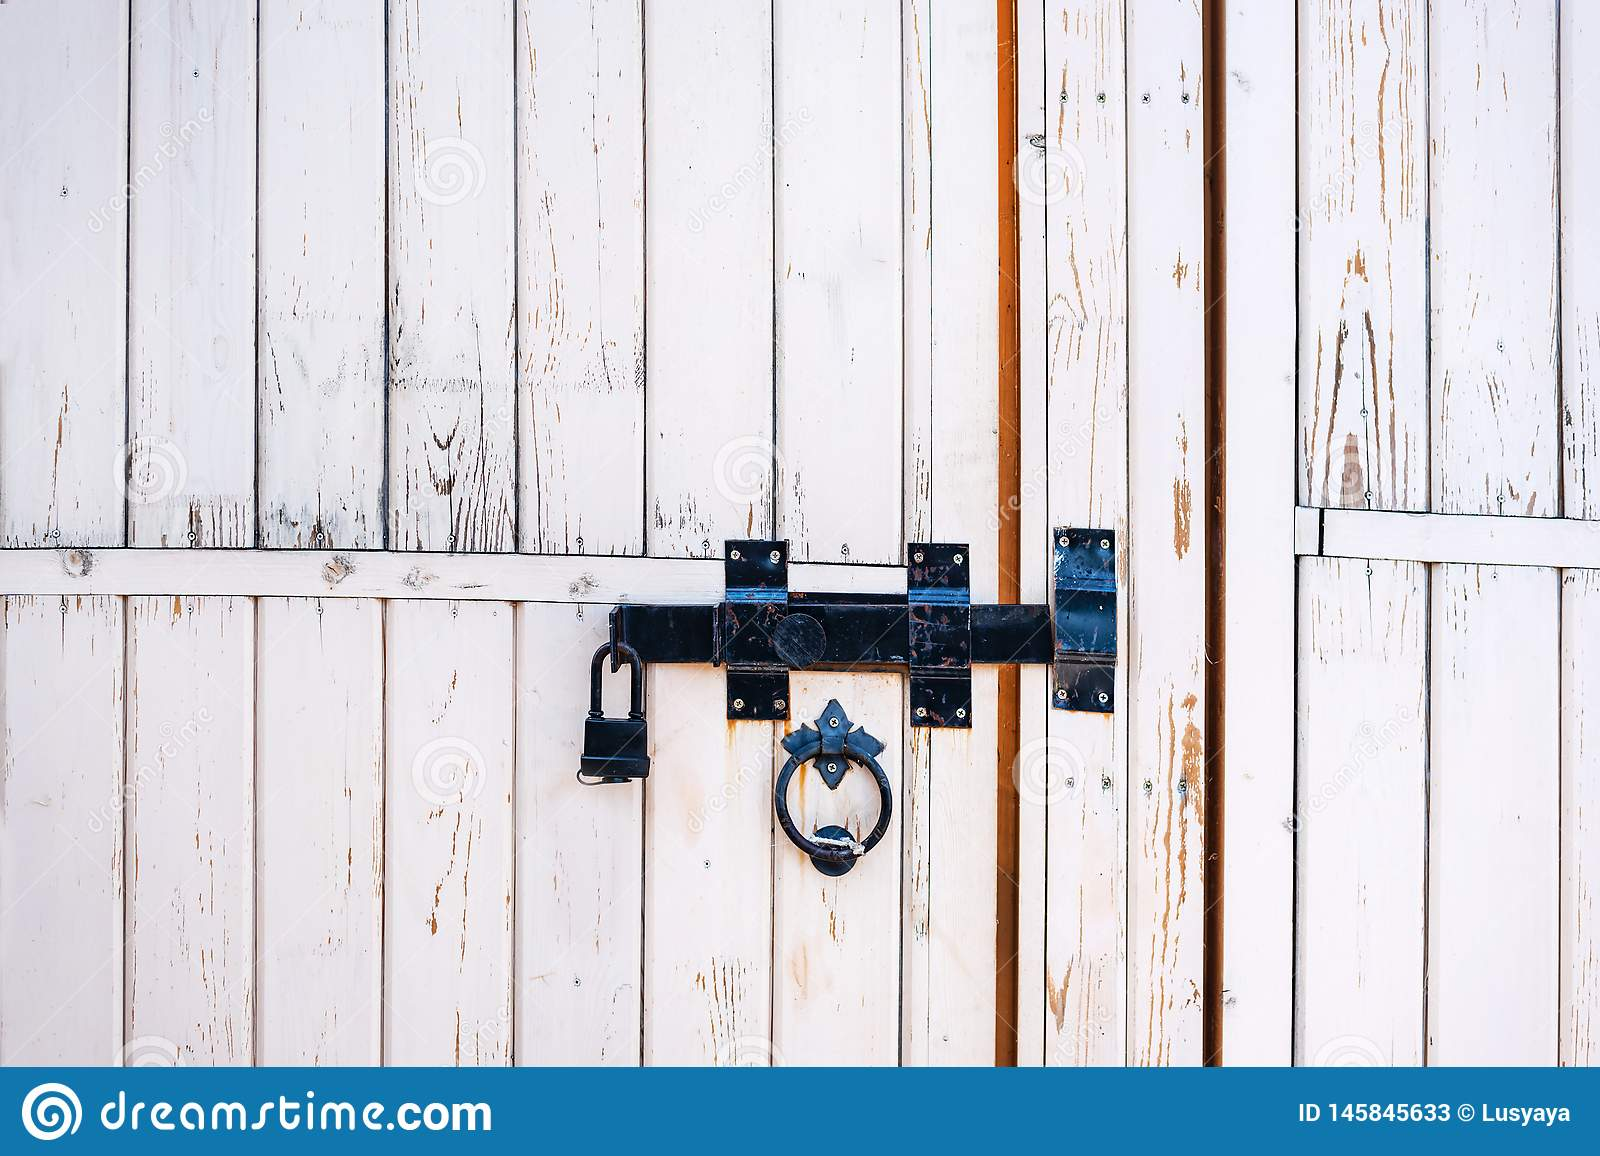 Backgrounds and textures: old white wooden door, closed with traditional forged metal lock